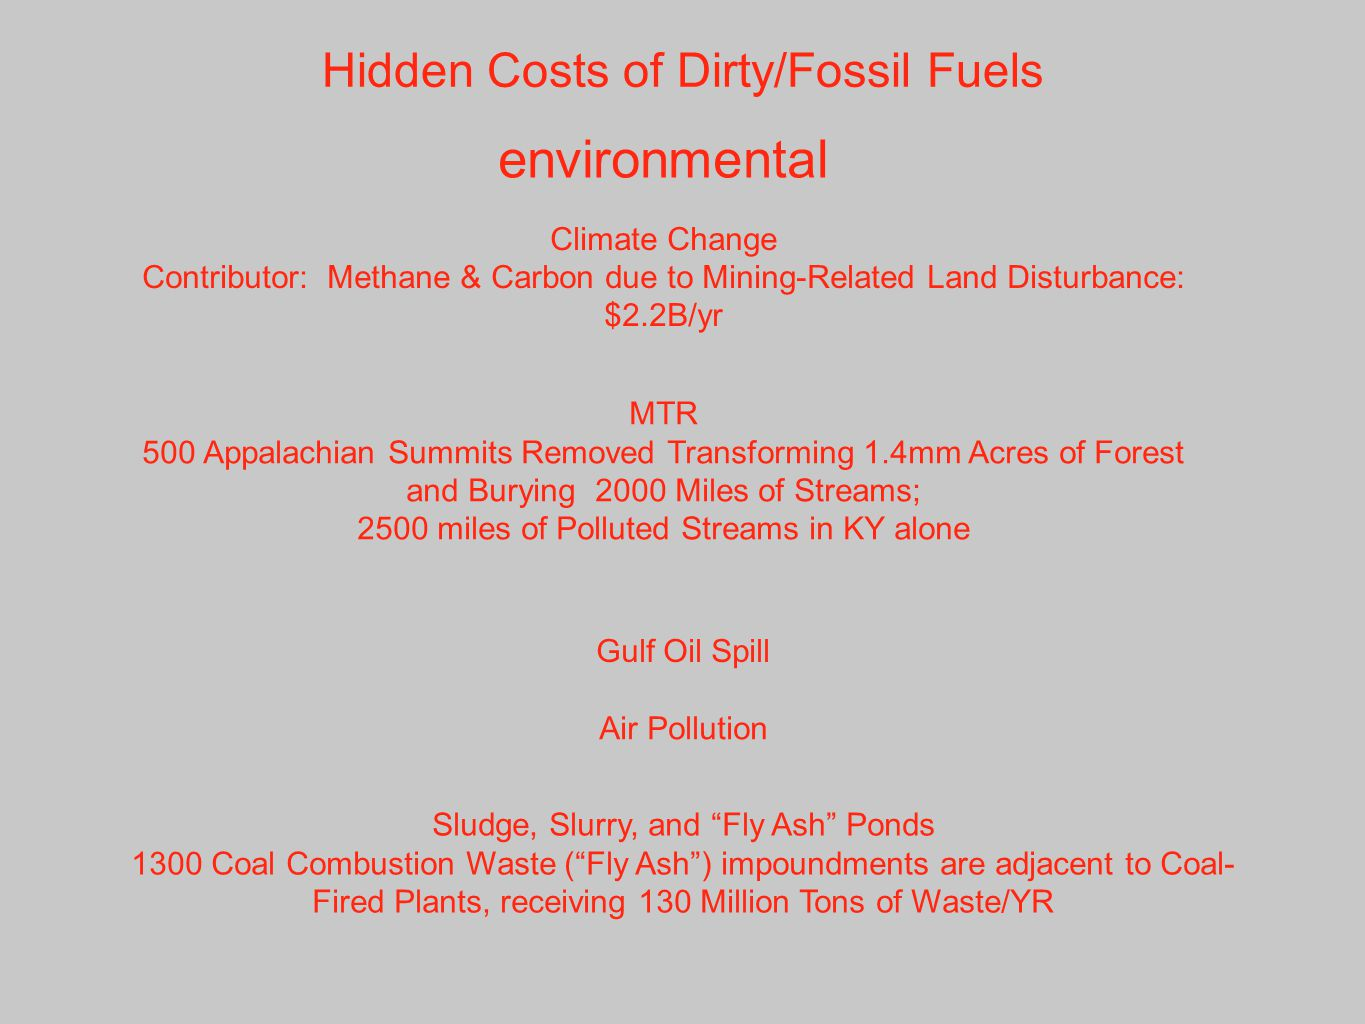 Hidden Costs of Dirty/Fossil Fuels environmental Climate Change Contributor: Methane & Carbon due to Mining-Related Land Disturbance: $2.2B/yr Gulf Oil Spill MTR 500 Appalachian Summits Removed Transforming 1.4mm Acres of Forest and Burying 2000 Miles of Streams; 2500 miles of Polluted Streams in KY alone Air Pollution Sludge, Slurry, and Fly Ash Ponds 1300 Coal Combustion Waste ( Fly Ash ) impoundments are adjacent to Coal- Fired Plants, receiving 130 Million Tons of Waste/YR